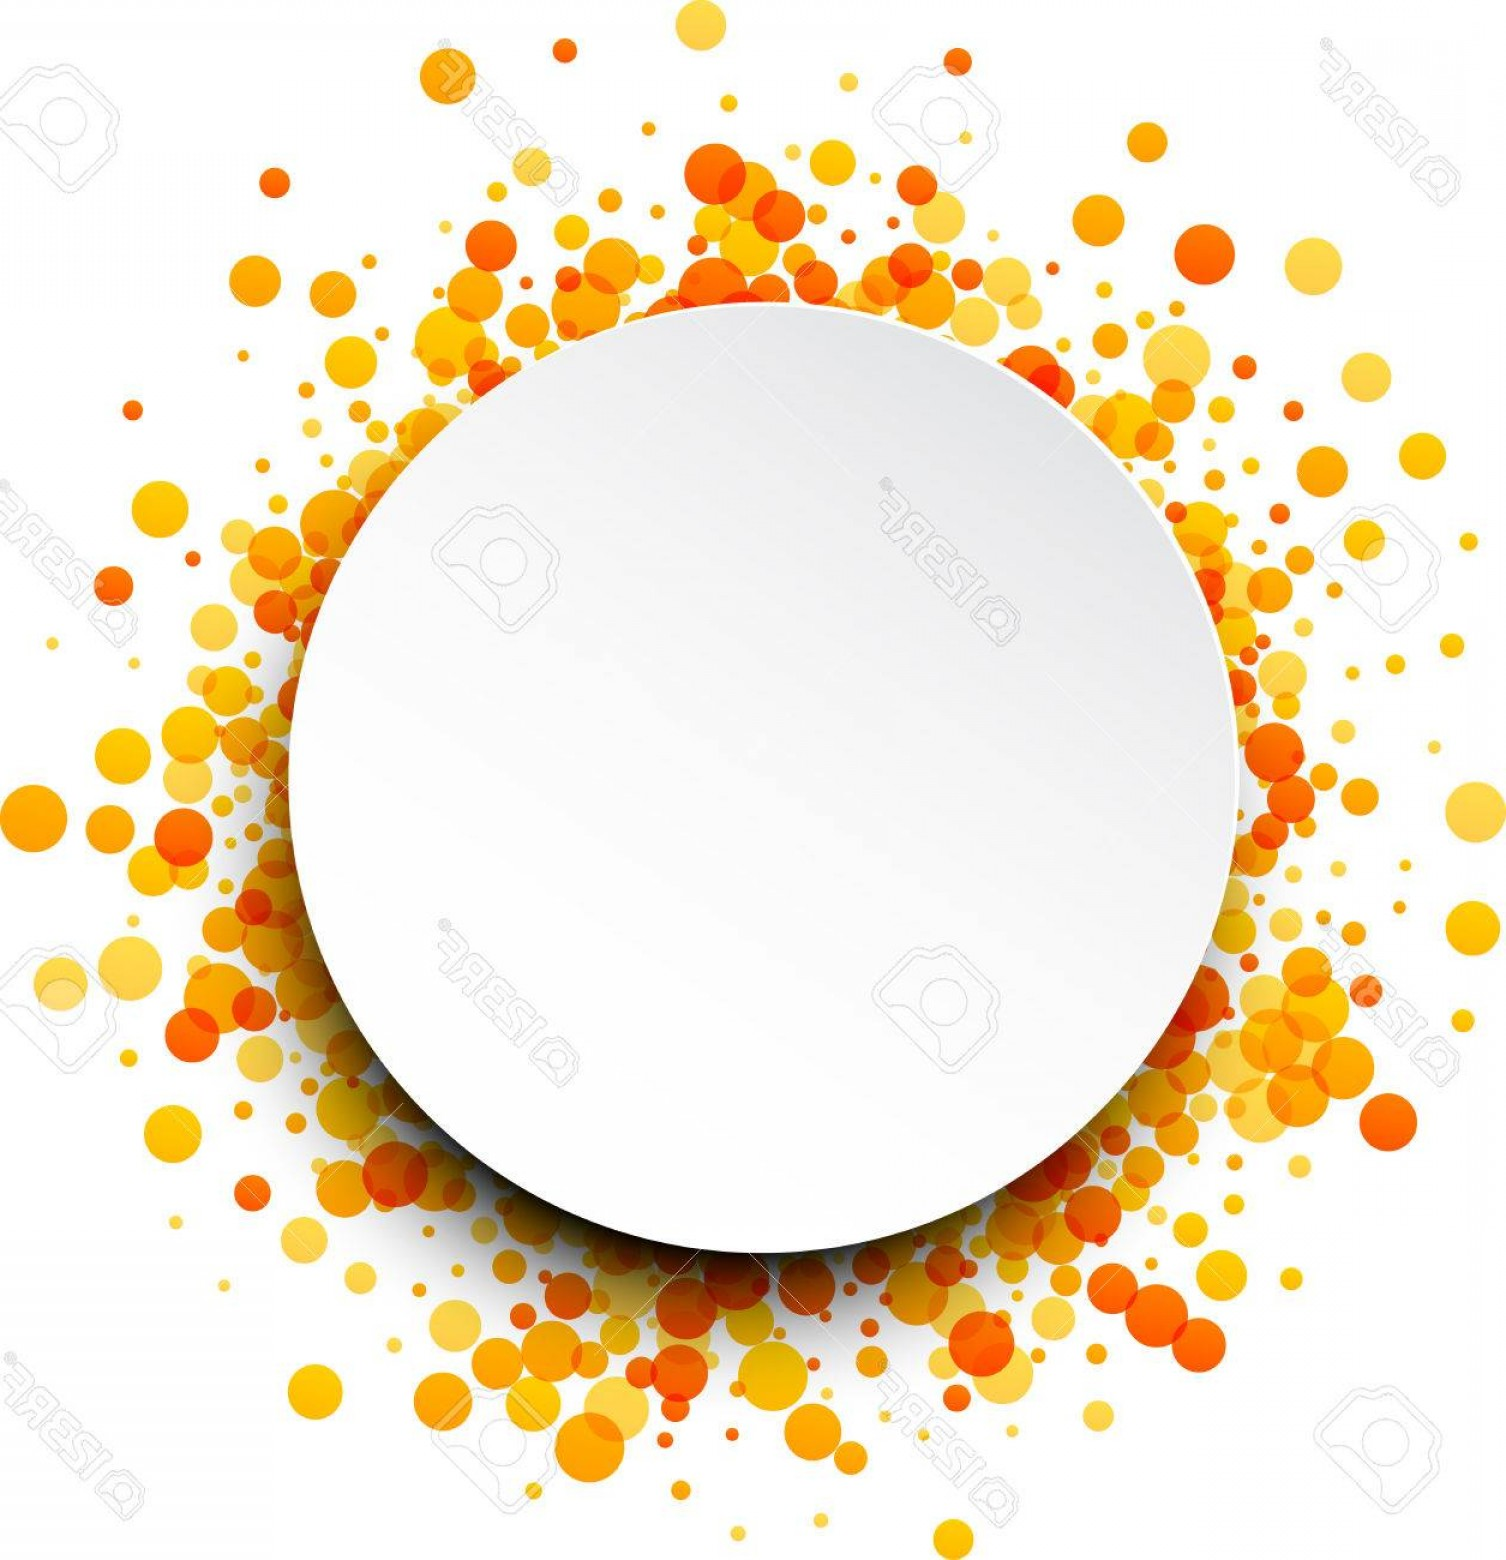 White Orange Vector: Photostock Vector Paper Round White Background With Orange And Yellow Drops Vector Illustration